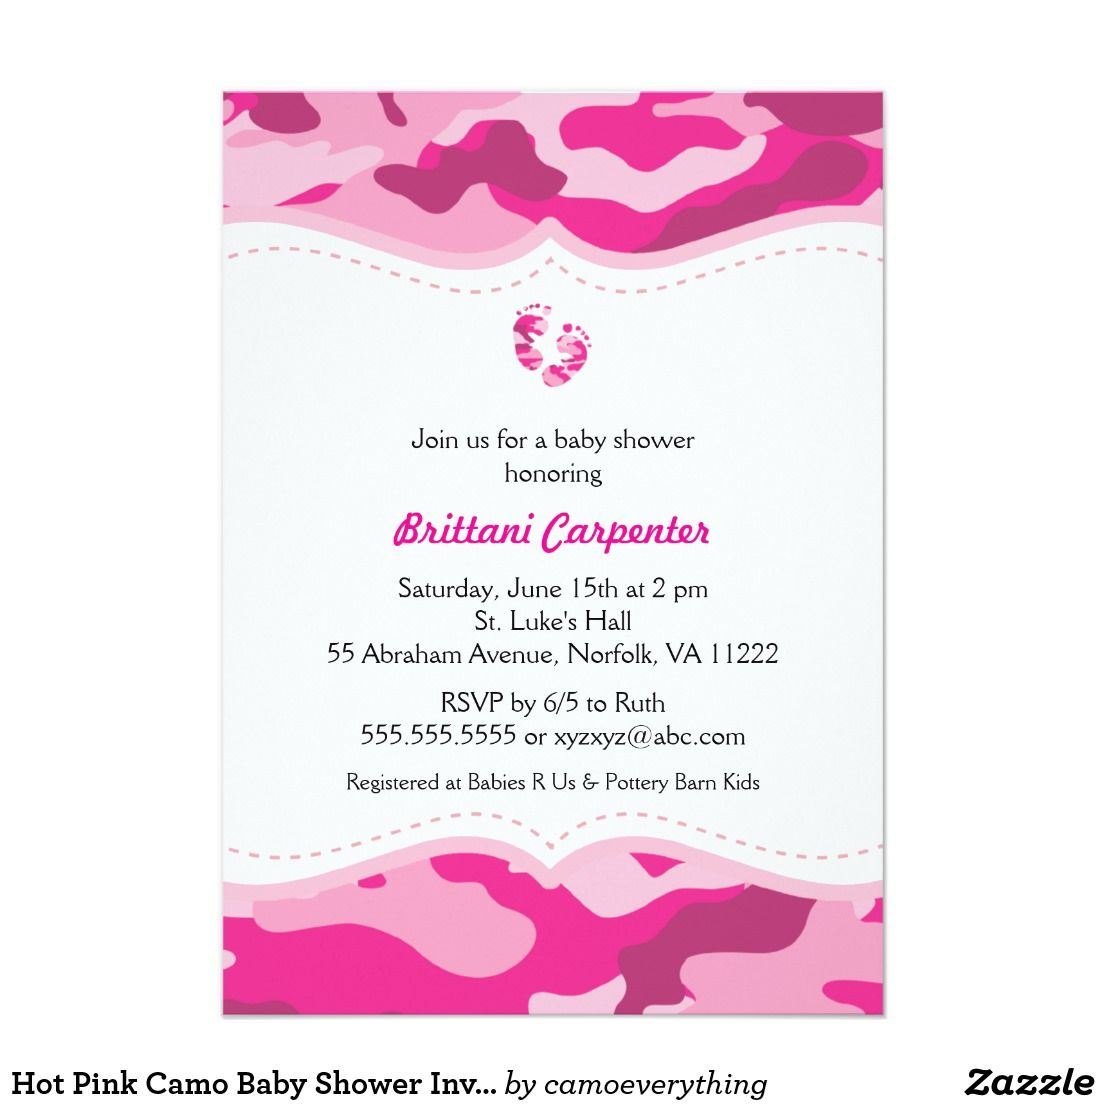 Hot Pink Camo Baby Shower Invitation with feet | Pink camo baby ...